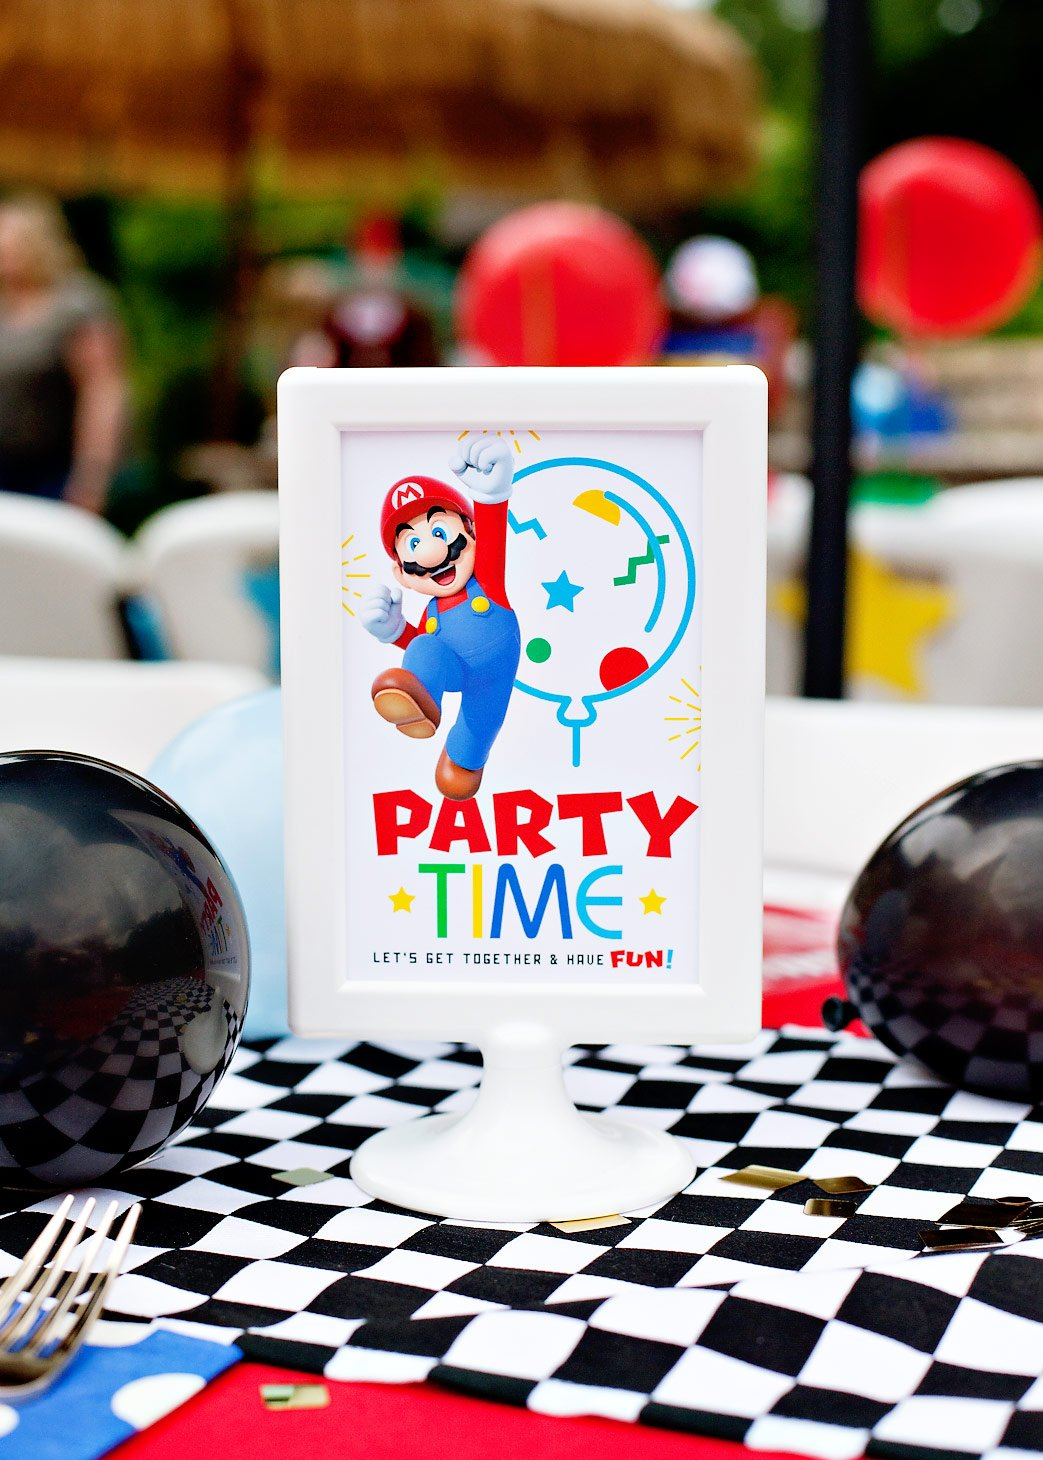 Super Mario Inspired Party Fun! 12 Creative Ideas (Part 1)